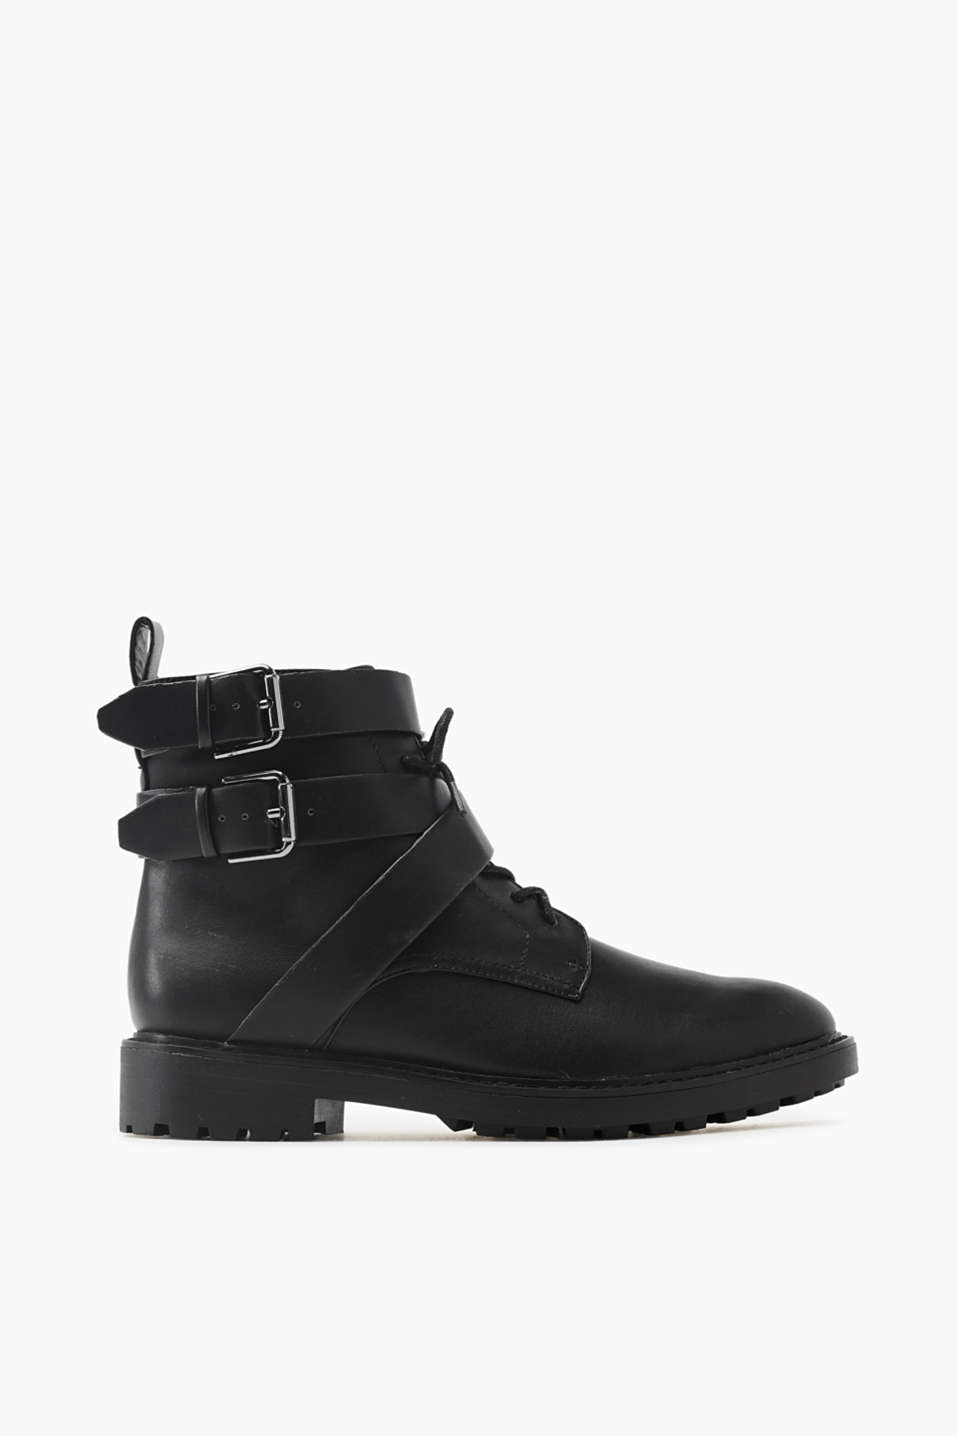 A stylish boot must-have for autumn! The treaded sole and distinctive buckles will round off your style nicely.